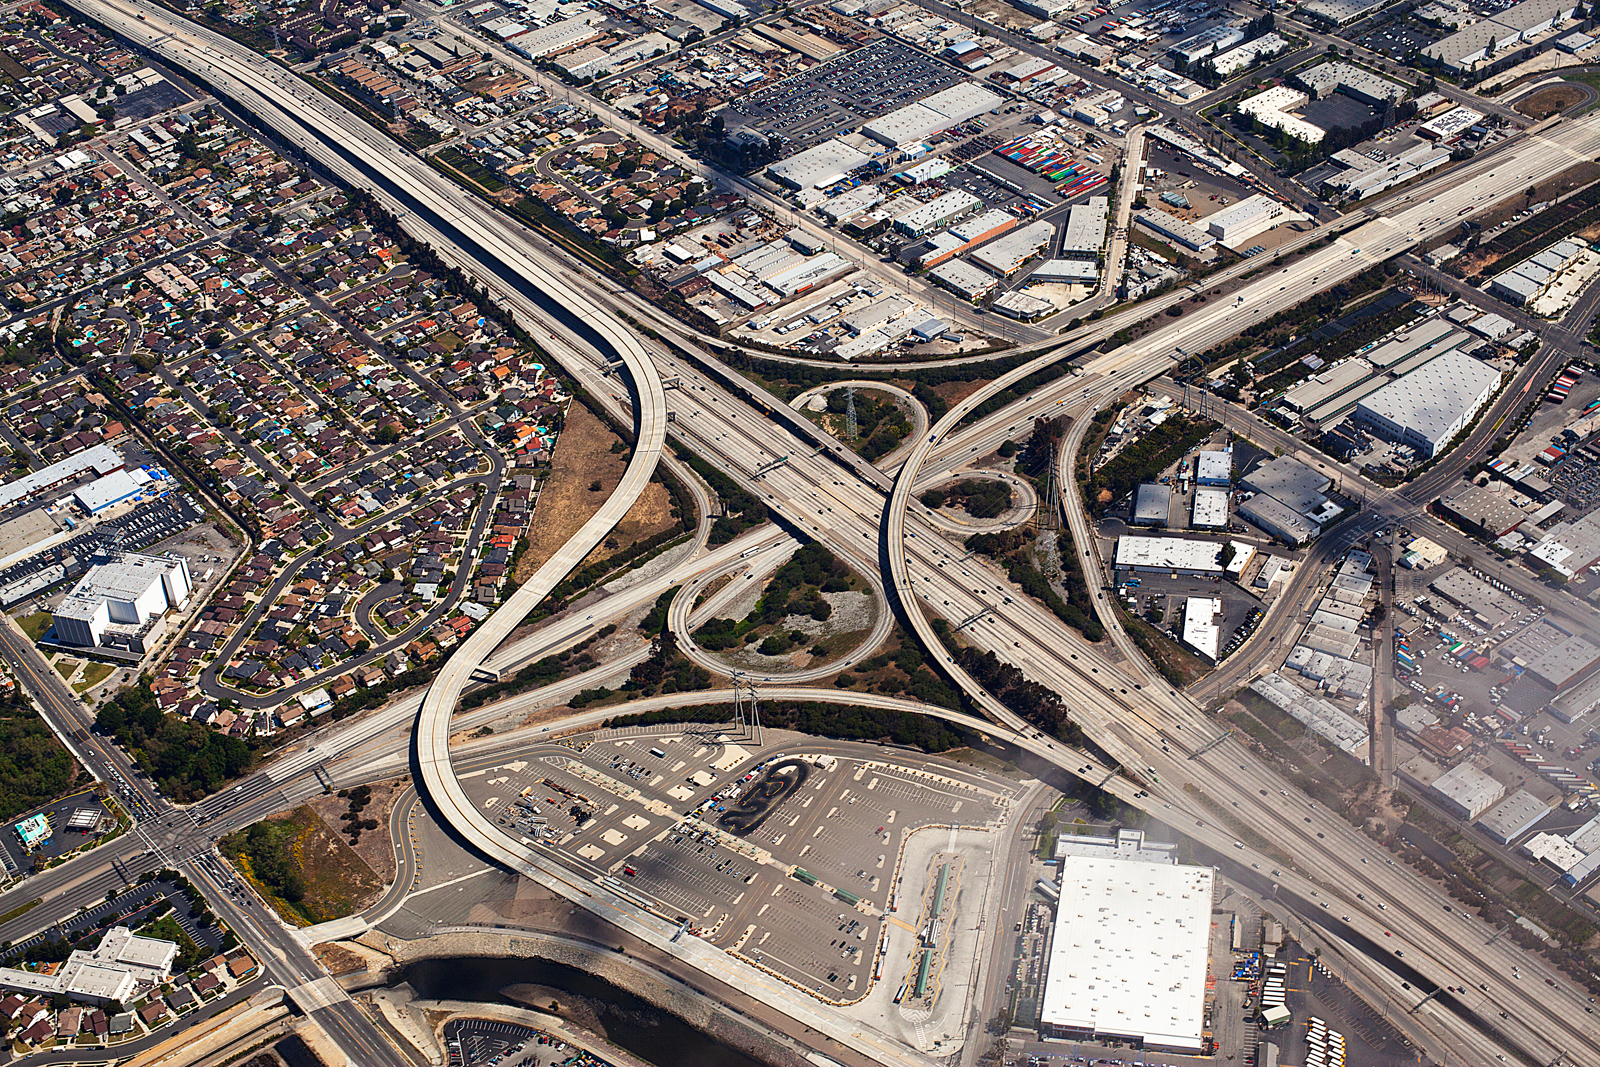 Taken at 2,000 feet the iconic American Freeway system Harbor Fwy 110 and Gardena Fwy California 01